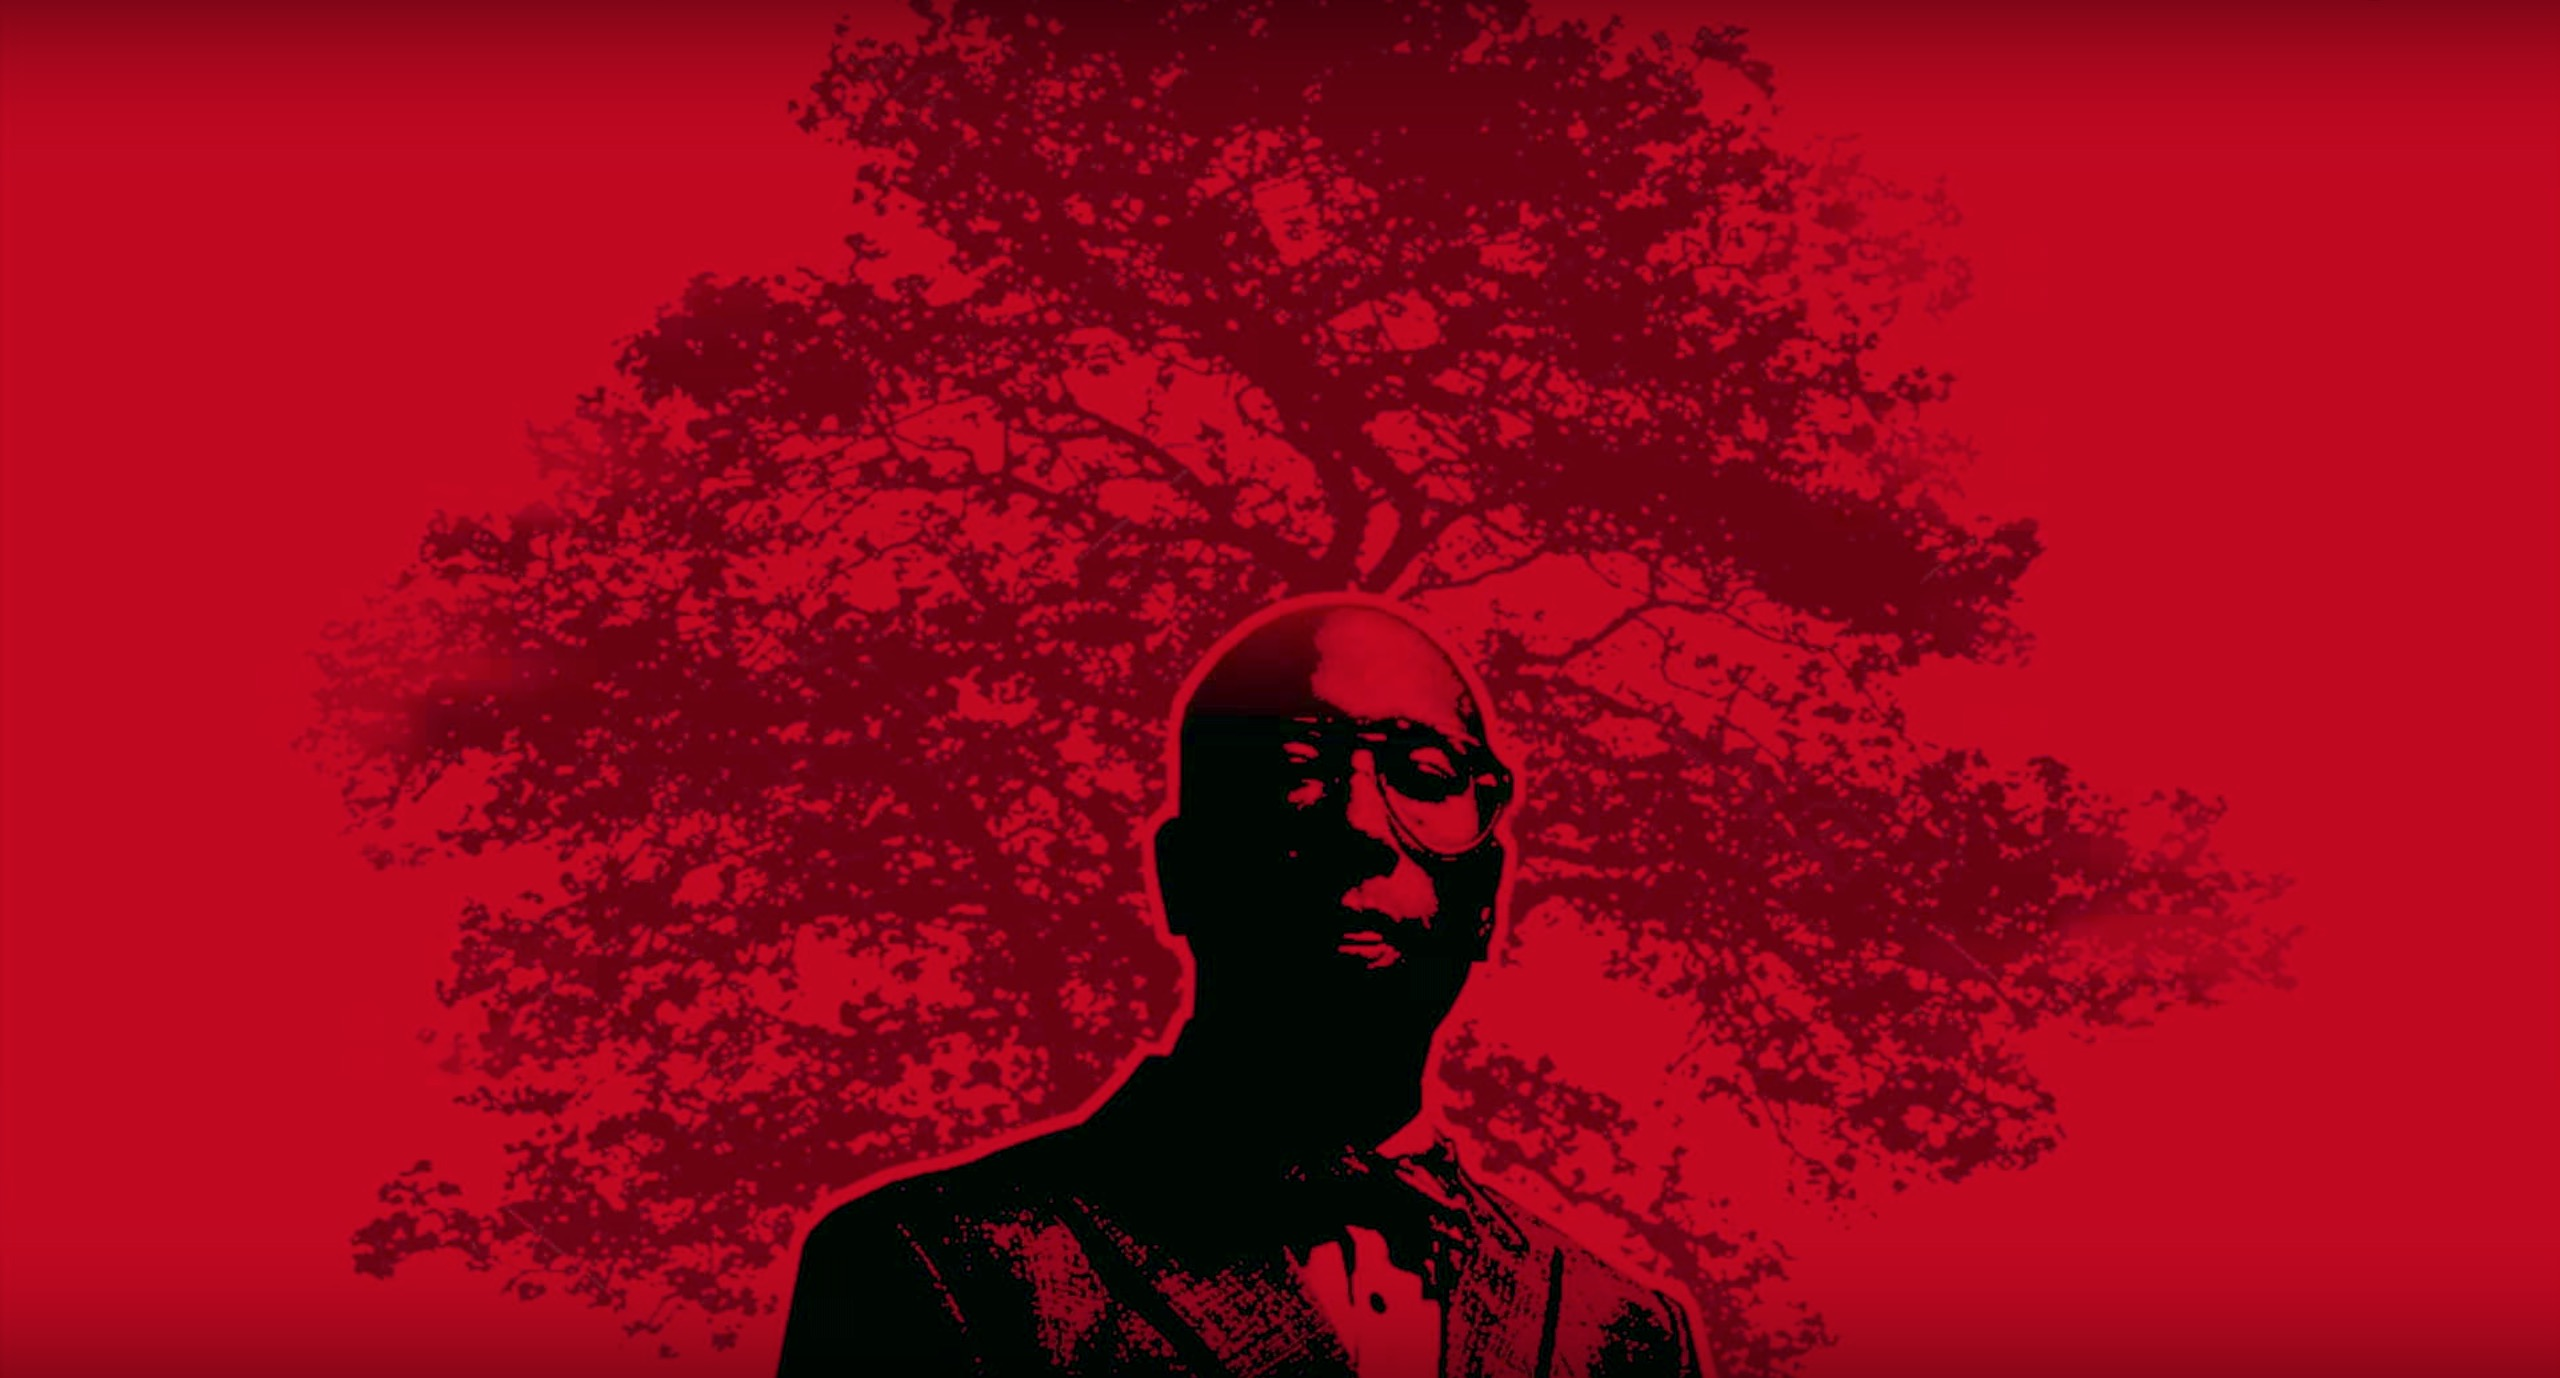 """Police Shootings Inspired This Raw Electronic """"Strange Fruit"""" Cover"""